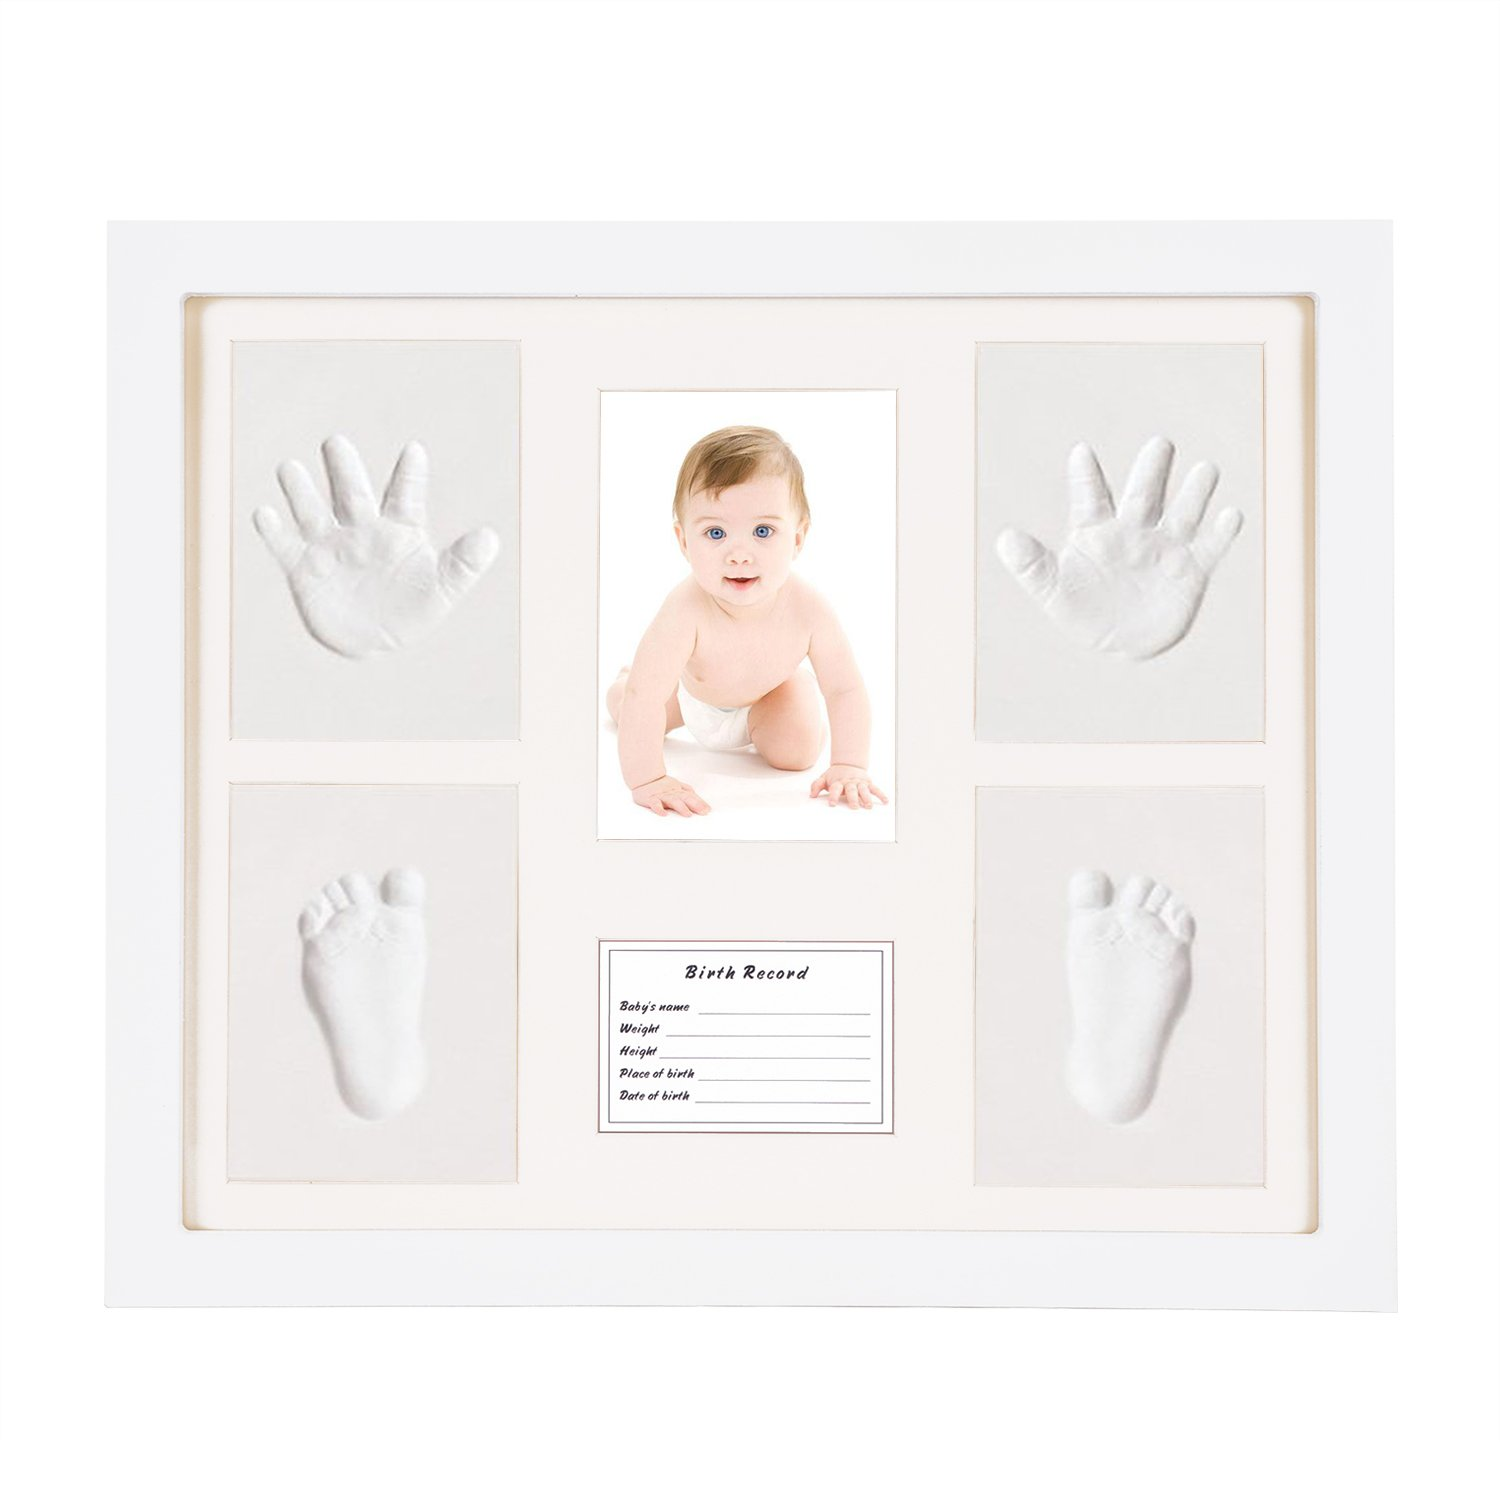 Newborn Babyprints Handprint Kit Footprint Makers Keepsake Frames Baby Gifts Memorable Decorations for Newborn DIY Creative Room Wall Table Décor Pictures (Wooden Frame + White Inkpad) Non Toxic Clay